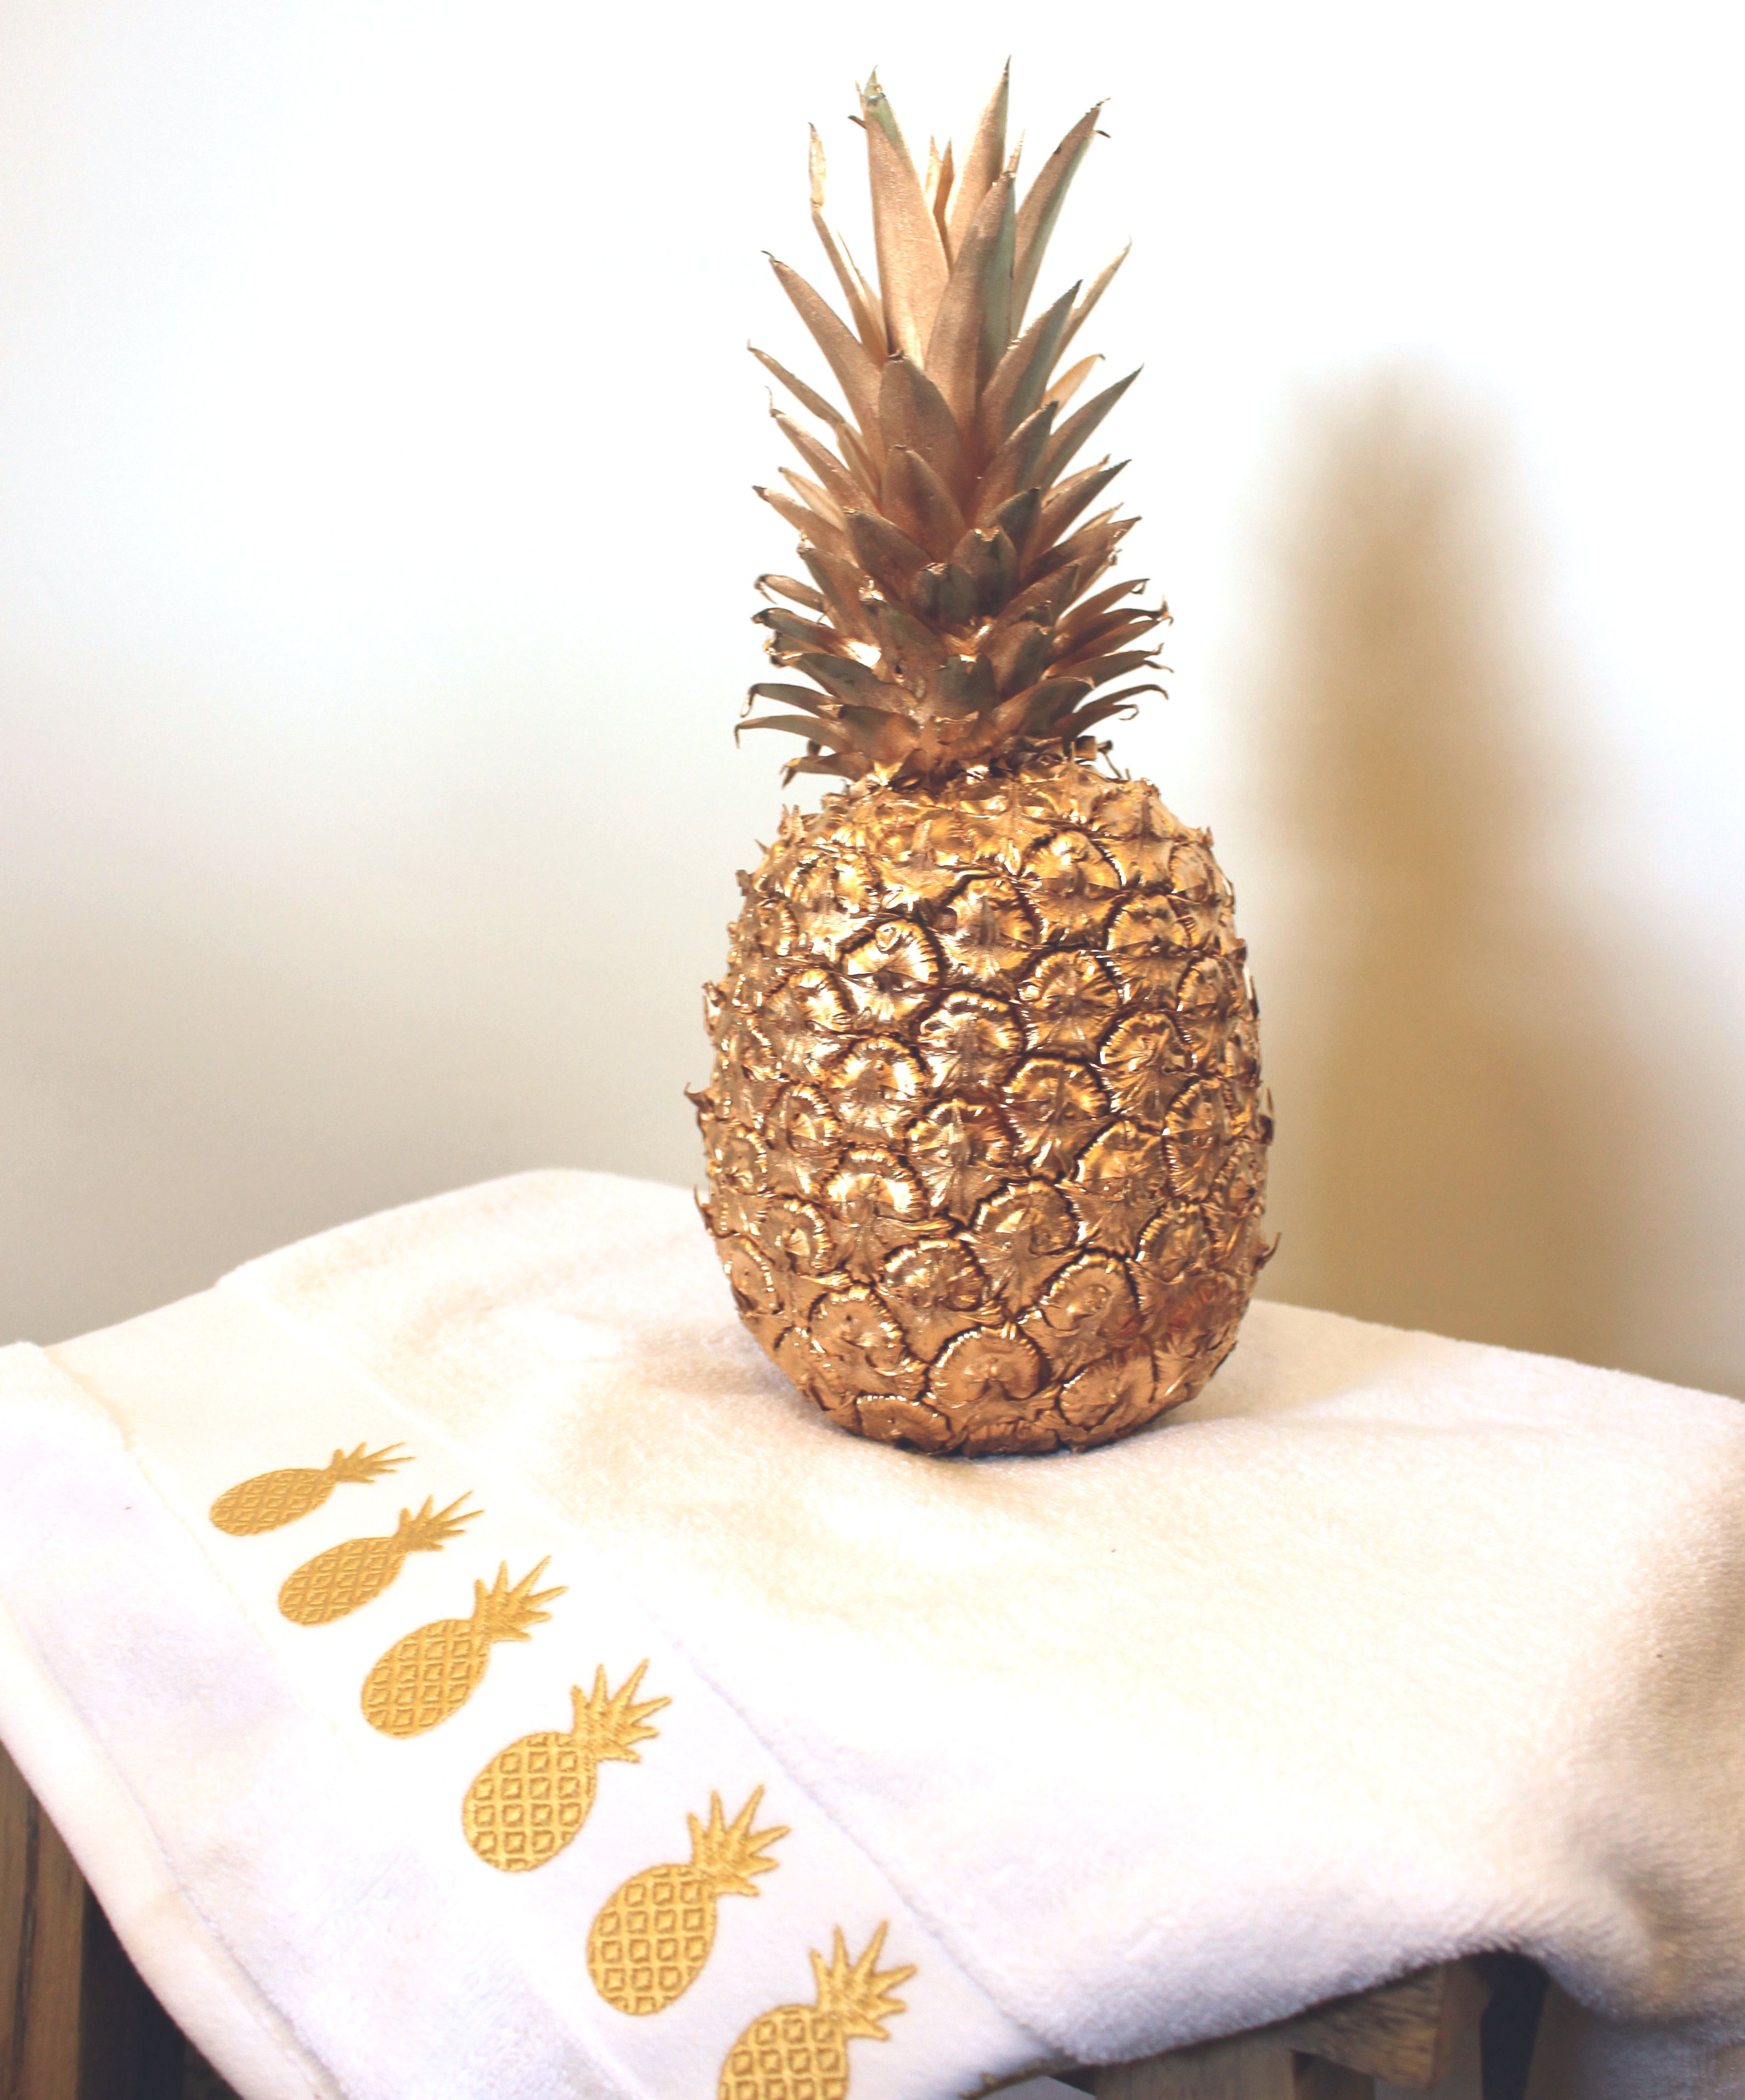 Gold Embroidered Pineapples Bath Towel Pineapple Pineapple Fruit Decorative Accessories Pineapple bathroom wall decor